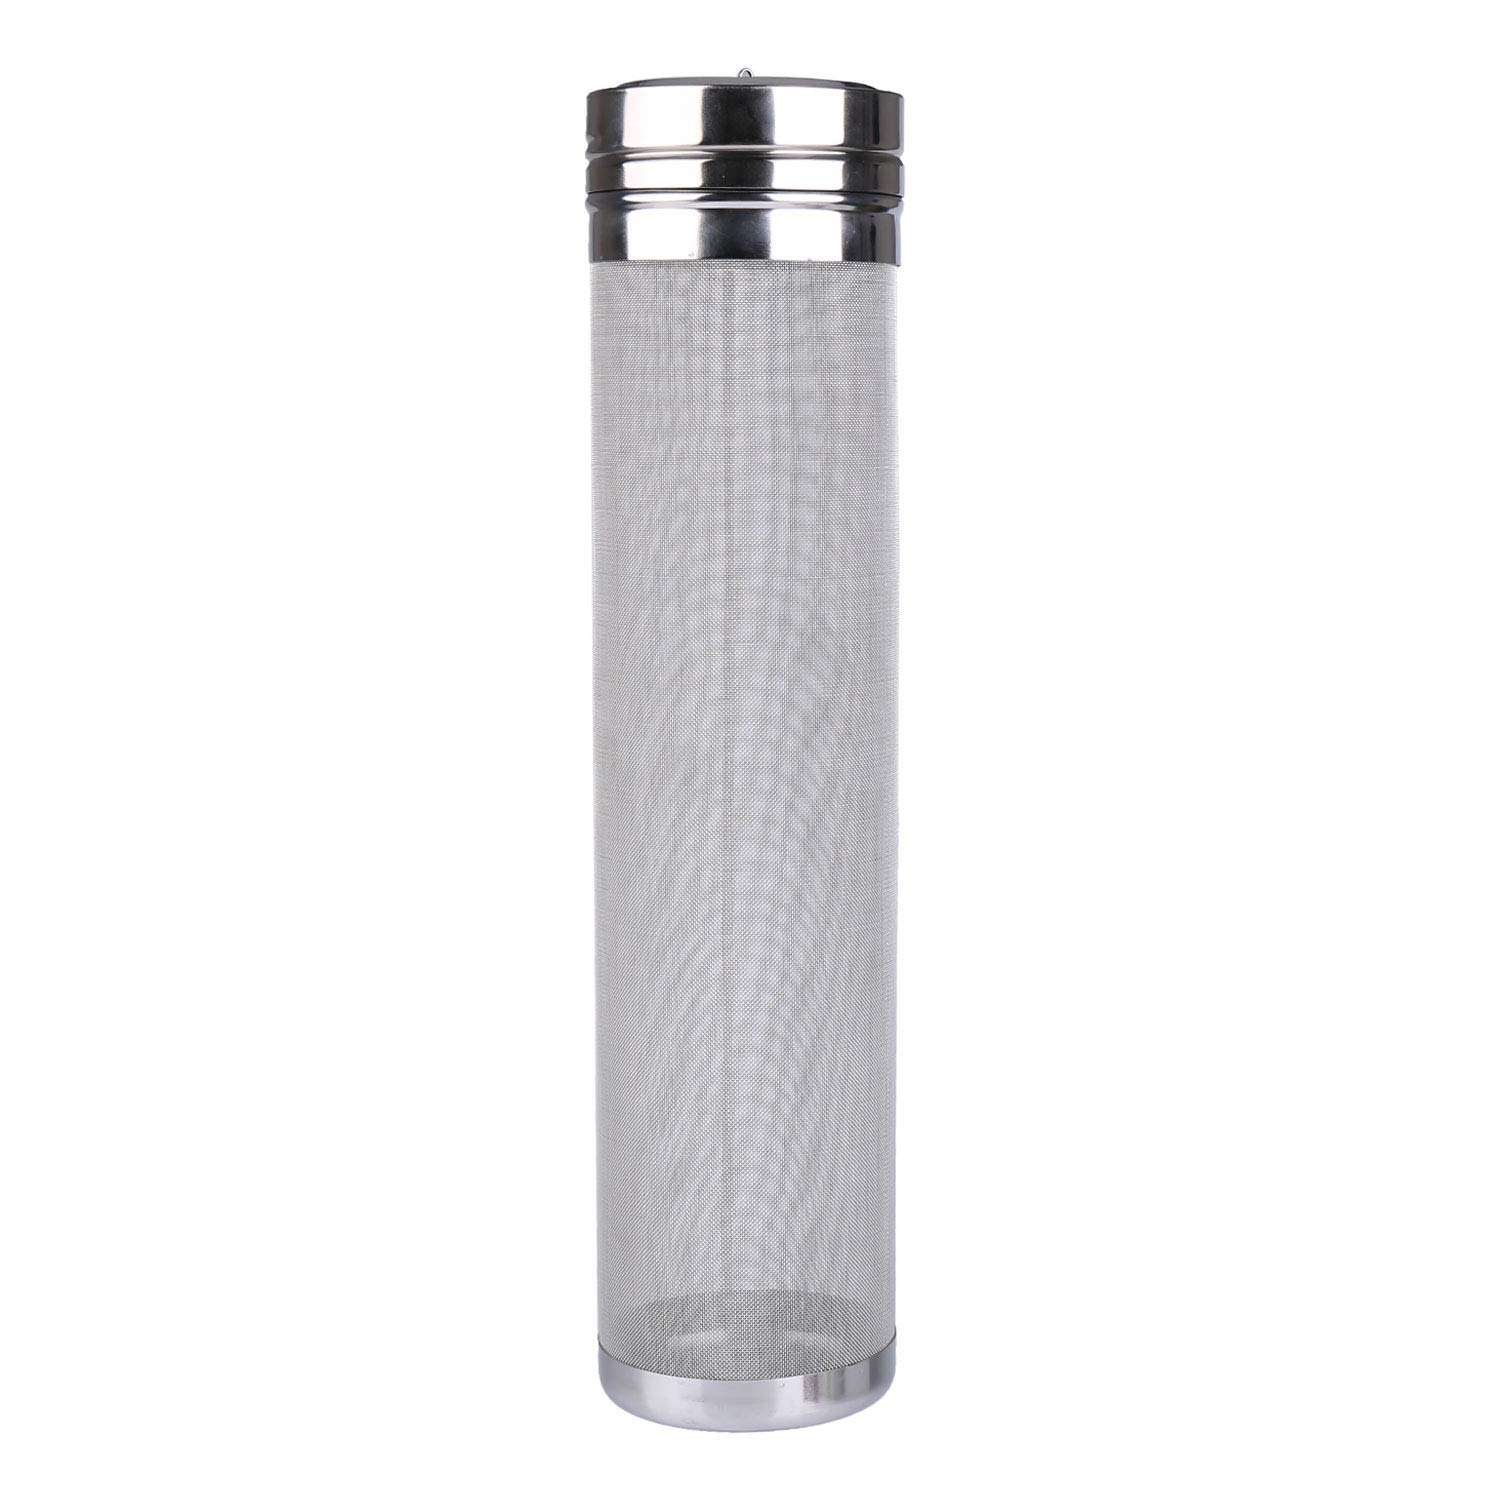 Outamateur 300 Micron Filter Stainless Steel Mesh Dry Hopper Brewing Filter Tea Kettle Brew Filter for Homebrew of Beer Wine Coffee (2.9 x 11.8)